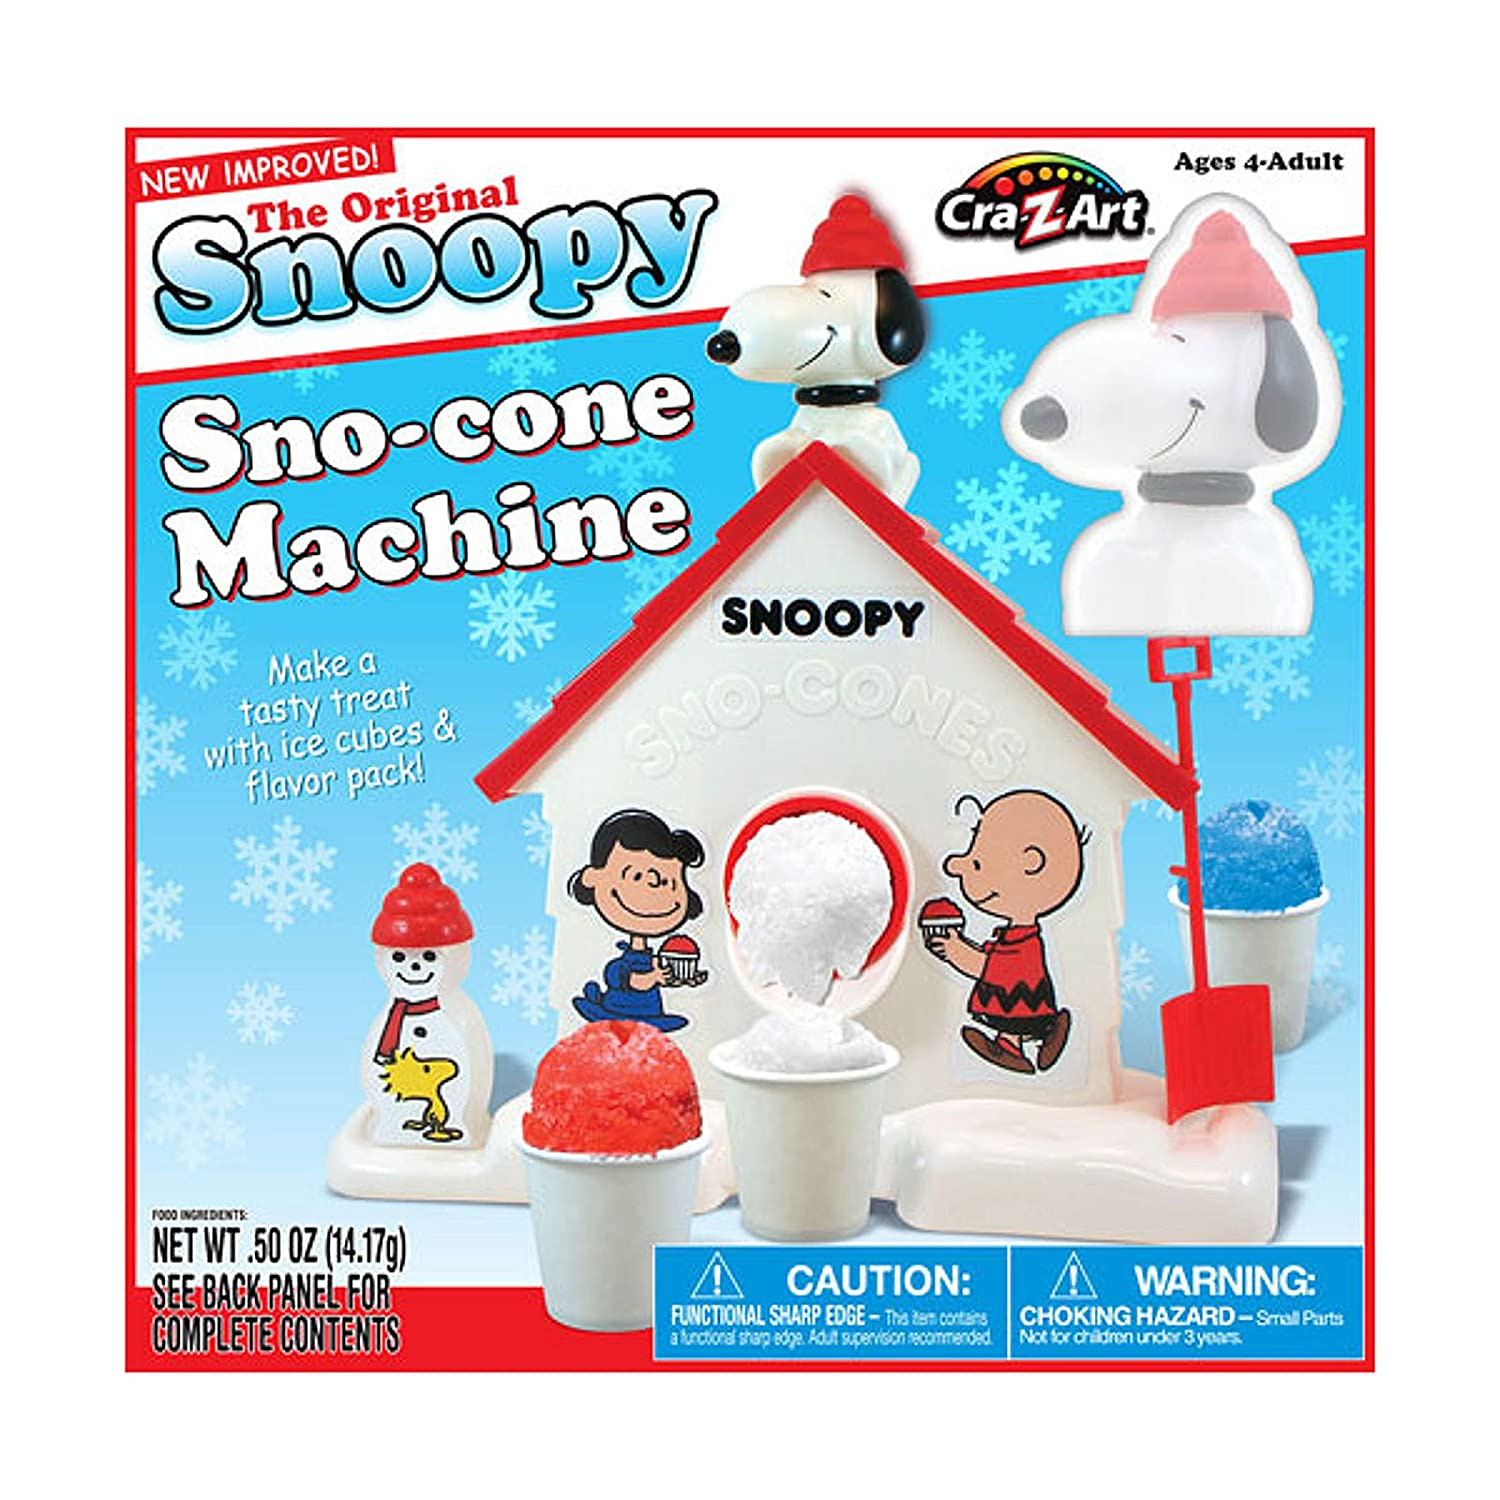 snoopy sno cone machine commercial